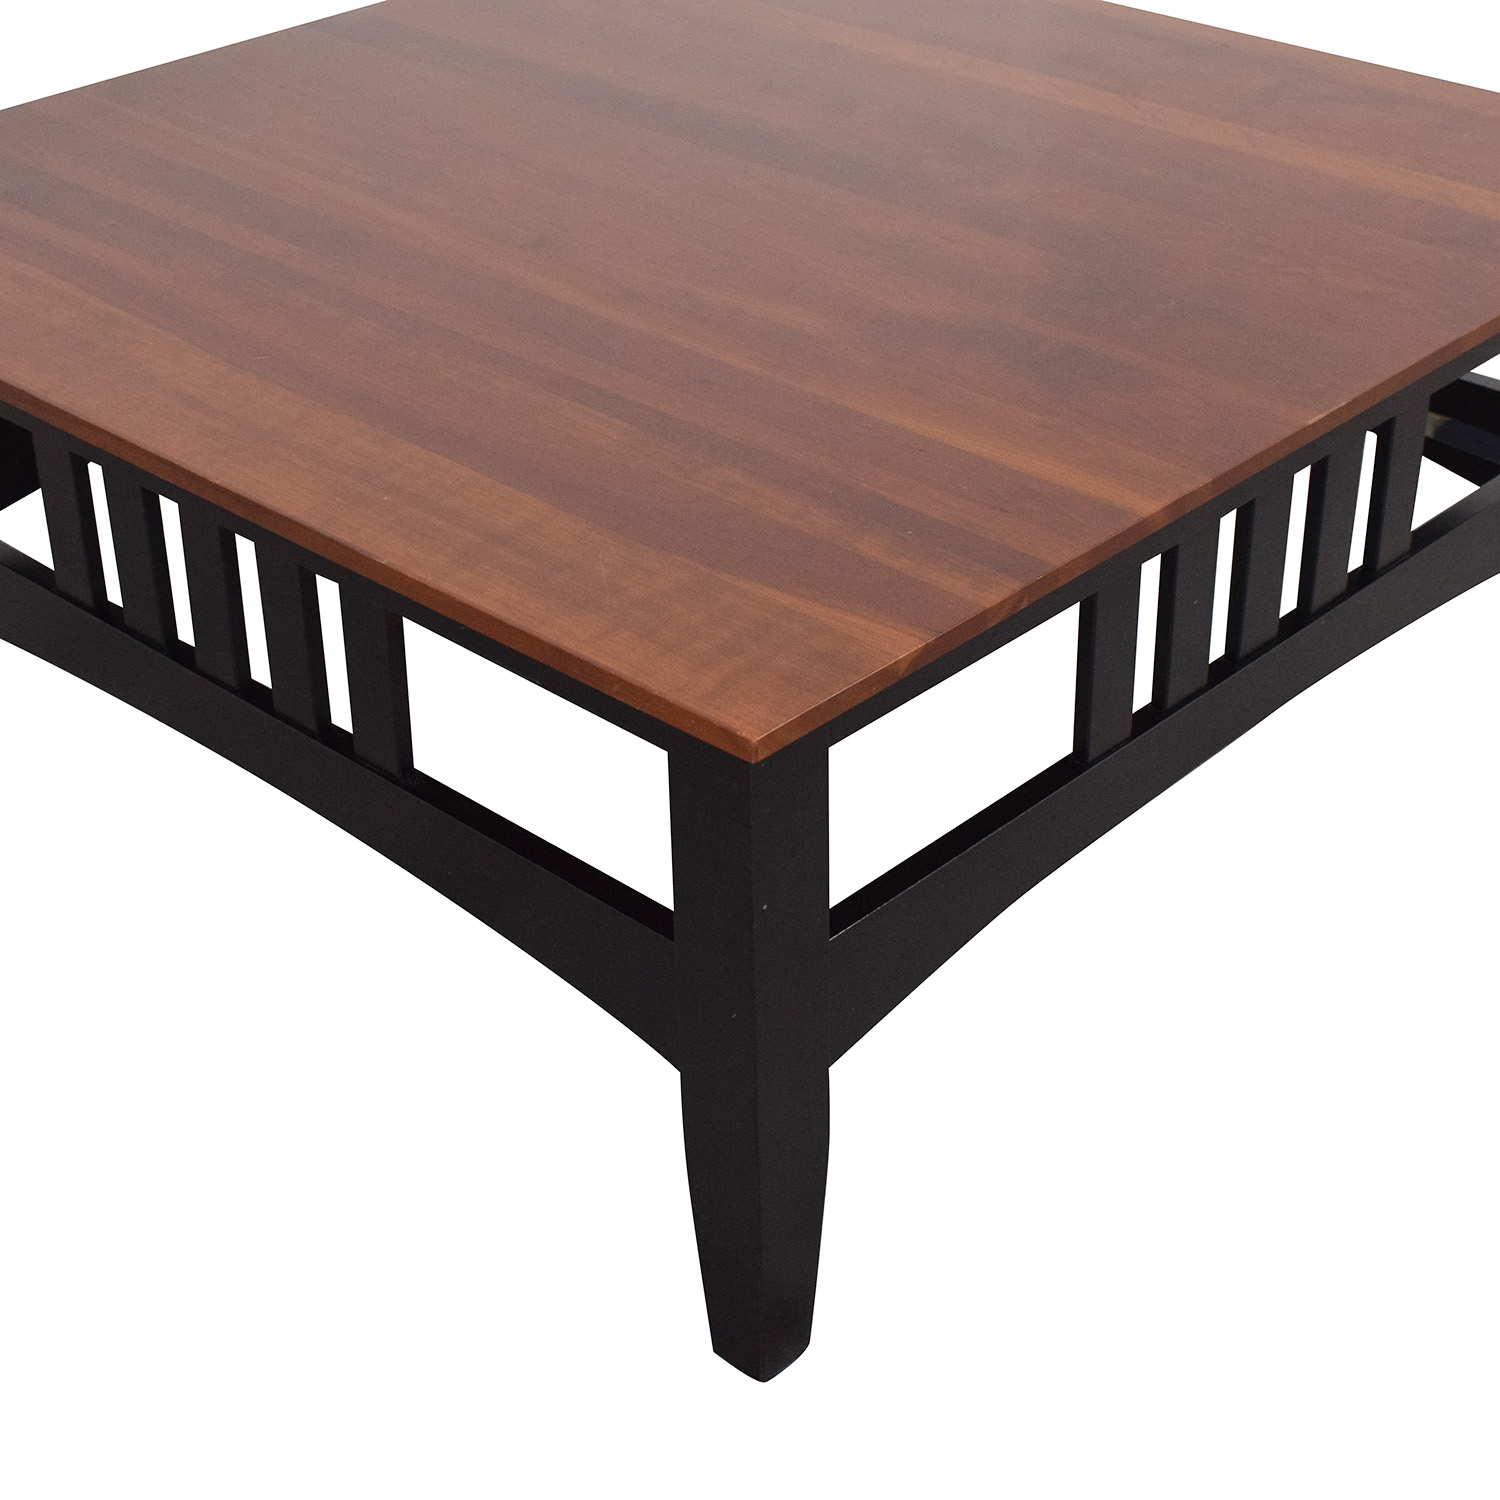 Ethan Allen Ethan Allen American Impressions Coffee Table price